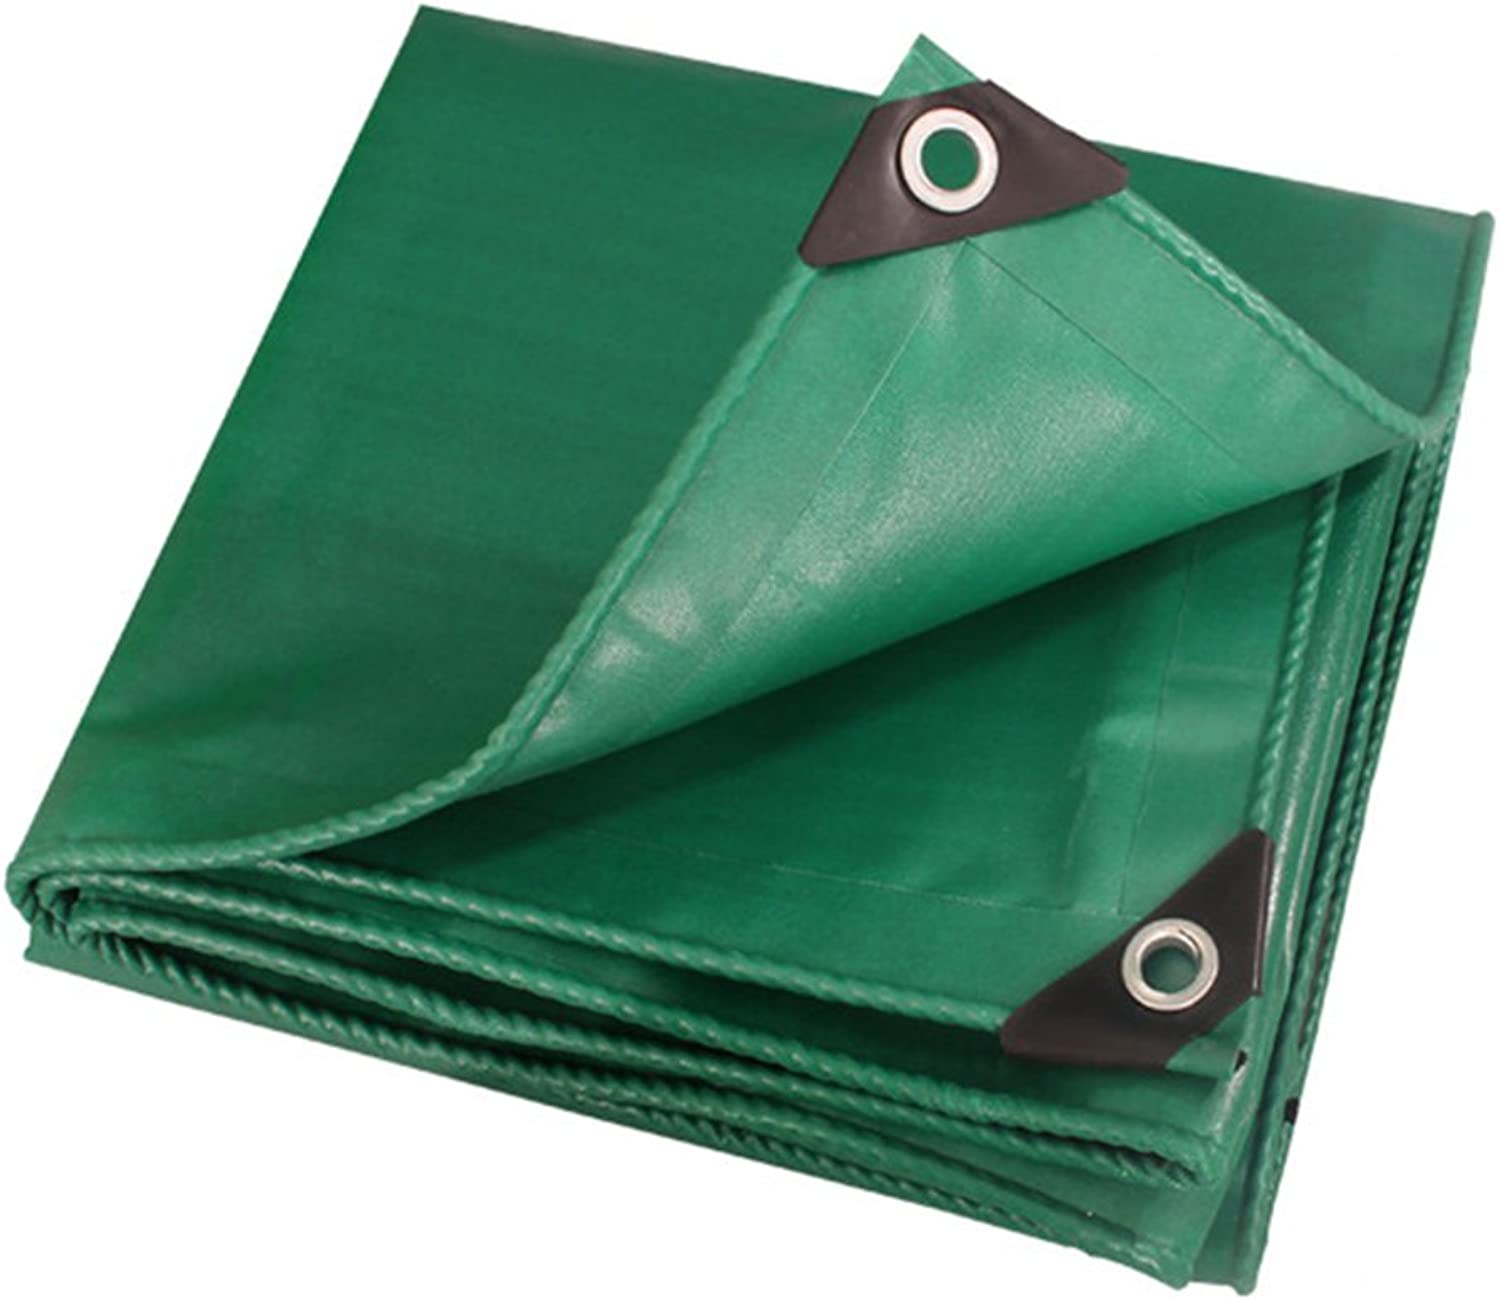 WUFENG Tarpaulin PVC Plastic Cloth 3 AntiCloth Super Thick Waterproof Sun Predection Hardy Linoleum Safety Environmental Predection Cover Fish Pond, 0.55mm Thick 650g m2